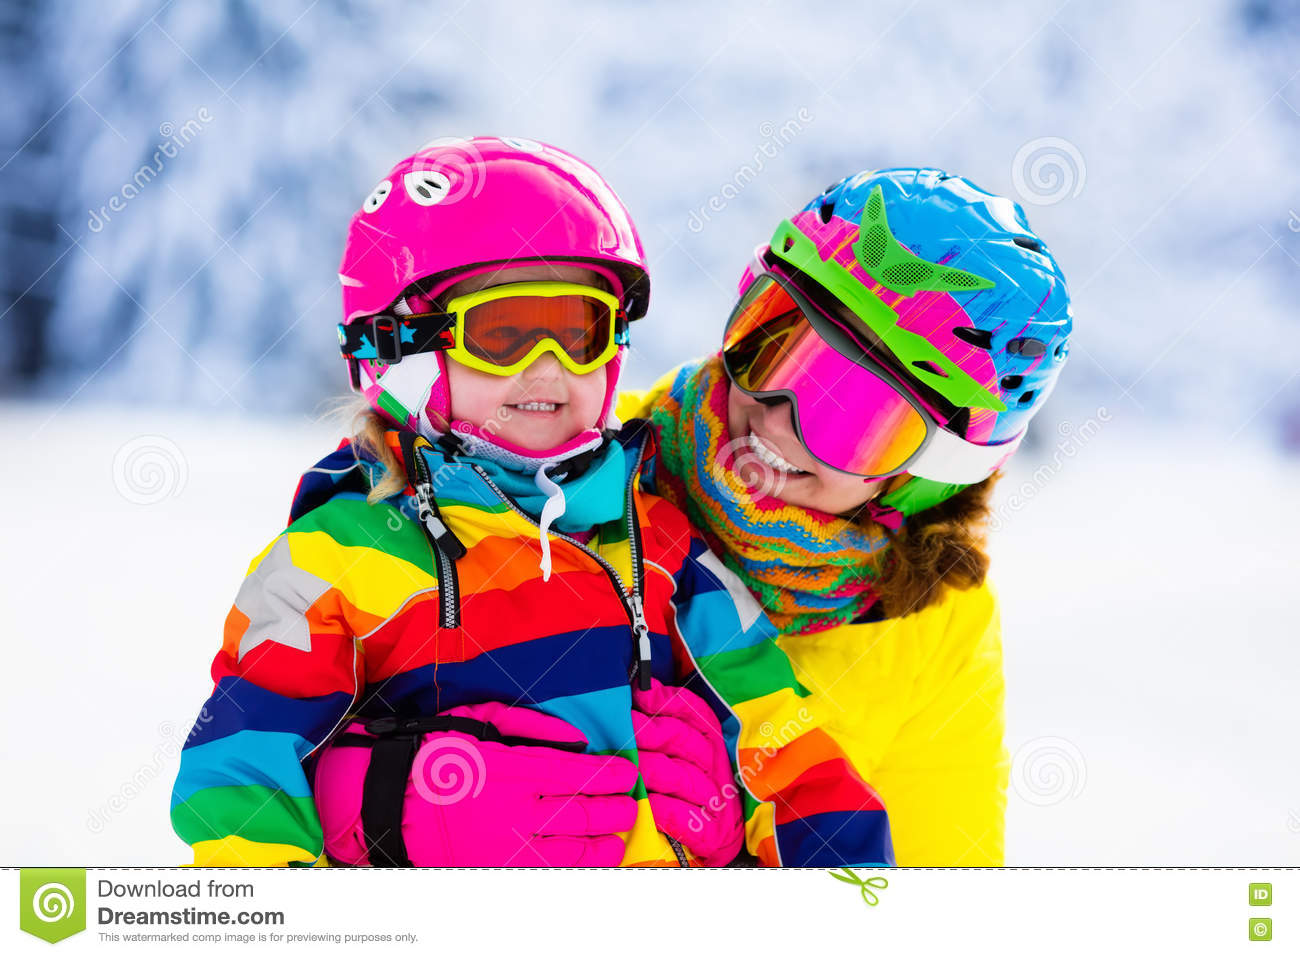 a07e7ee0c393 Family Ski And Snow Fun In Winter Mountains Stock Image - Image of ...